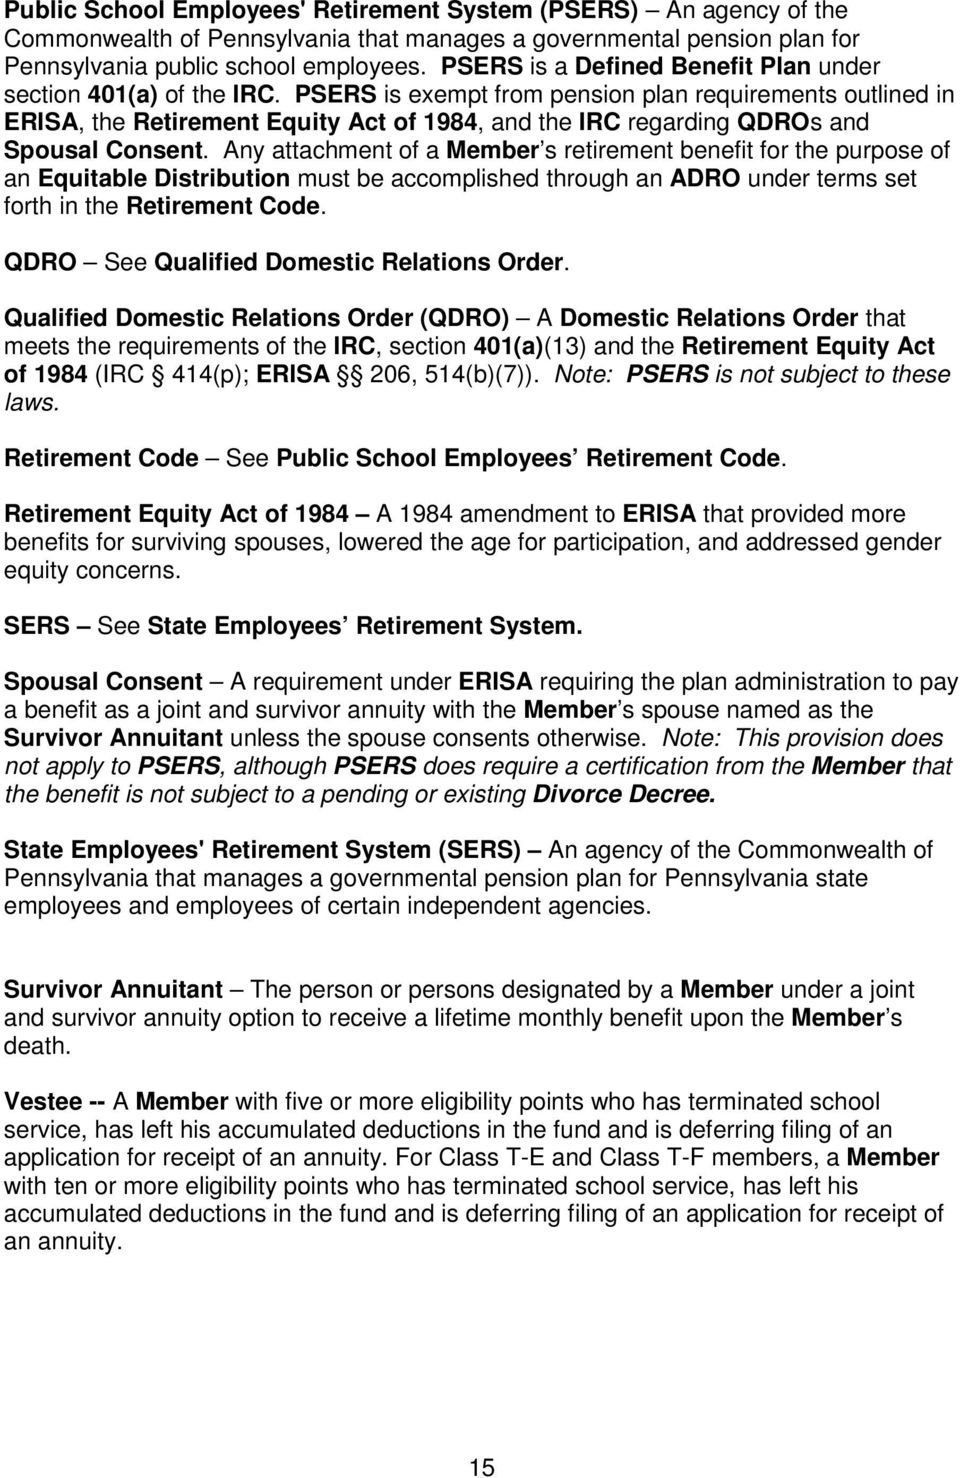 PSERS is exempt from pension plan requirements outlined in ERISA, the Retirement Equity Act of 1984, and the IRC regarding QDROs and Spousal Consent.